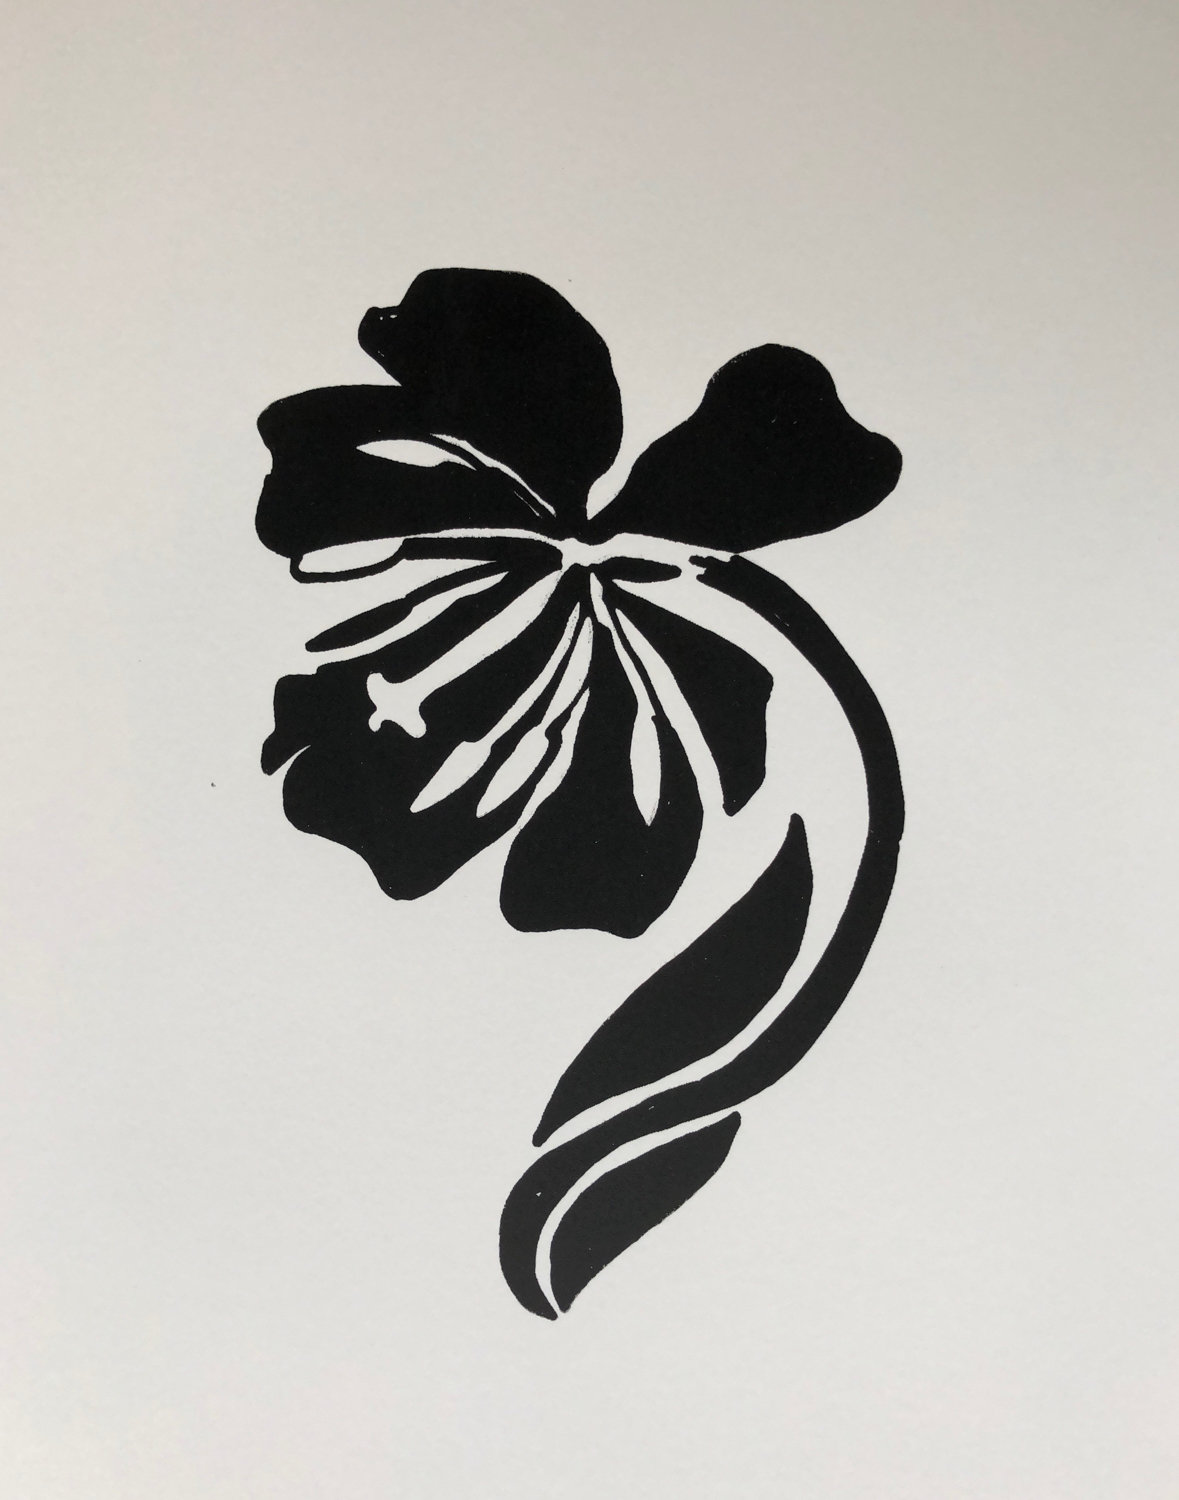 Aija Sears' 'Tulip' is included in the exhibition 'Black & White,' a group of monochrome paintings by Riverdale Art Association members, on display at the Riverdale-Yonkers Society for Ethical Culture through Nov. 25.